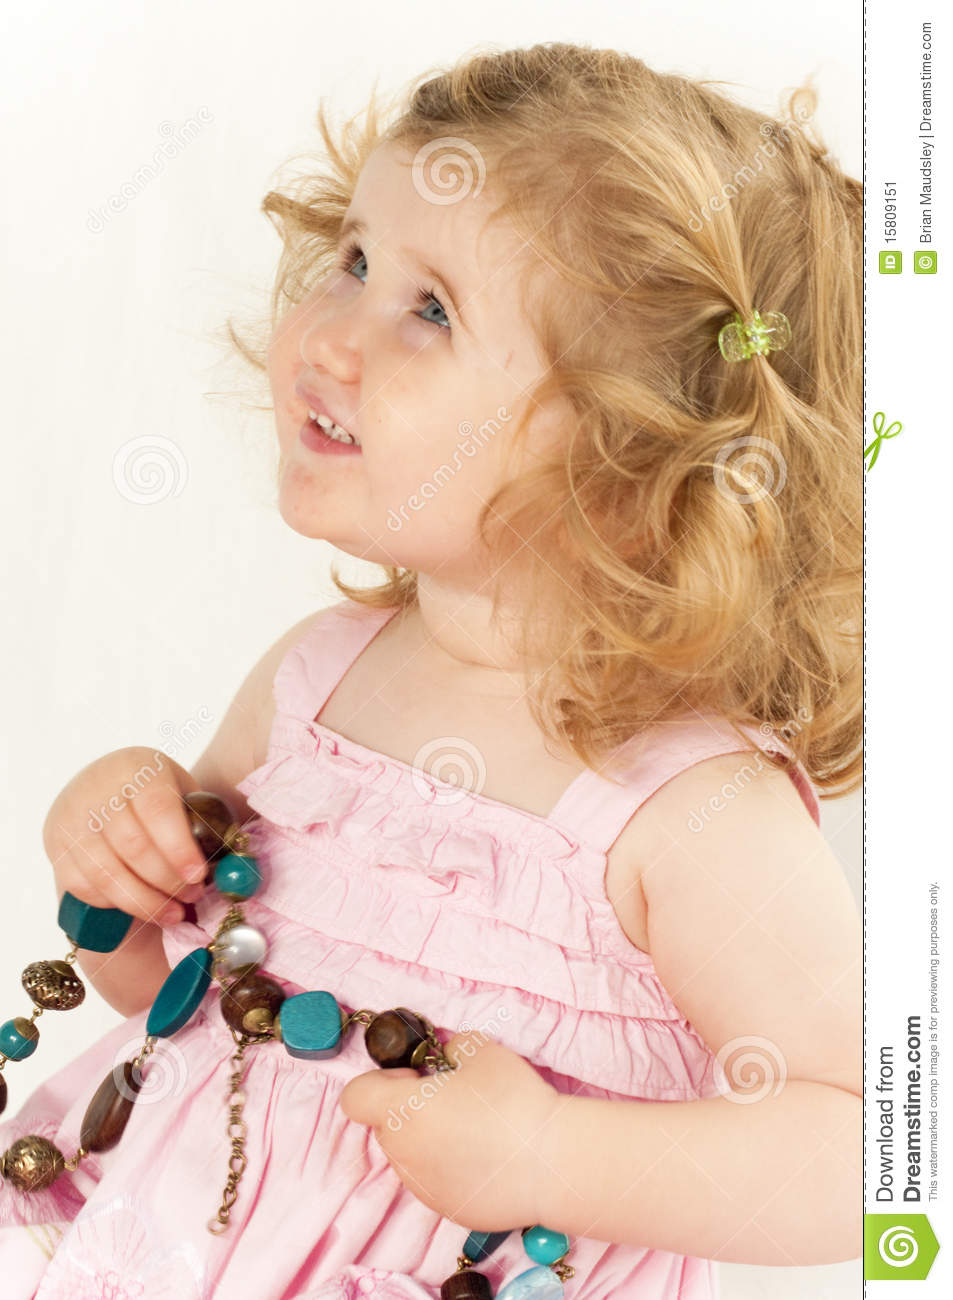 Infant girl holding a large bead necklace.